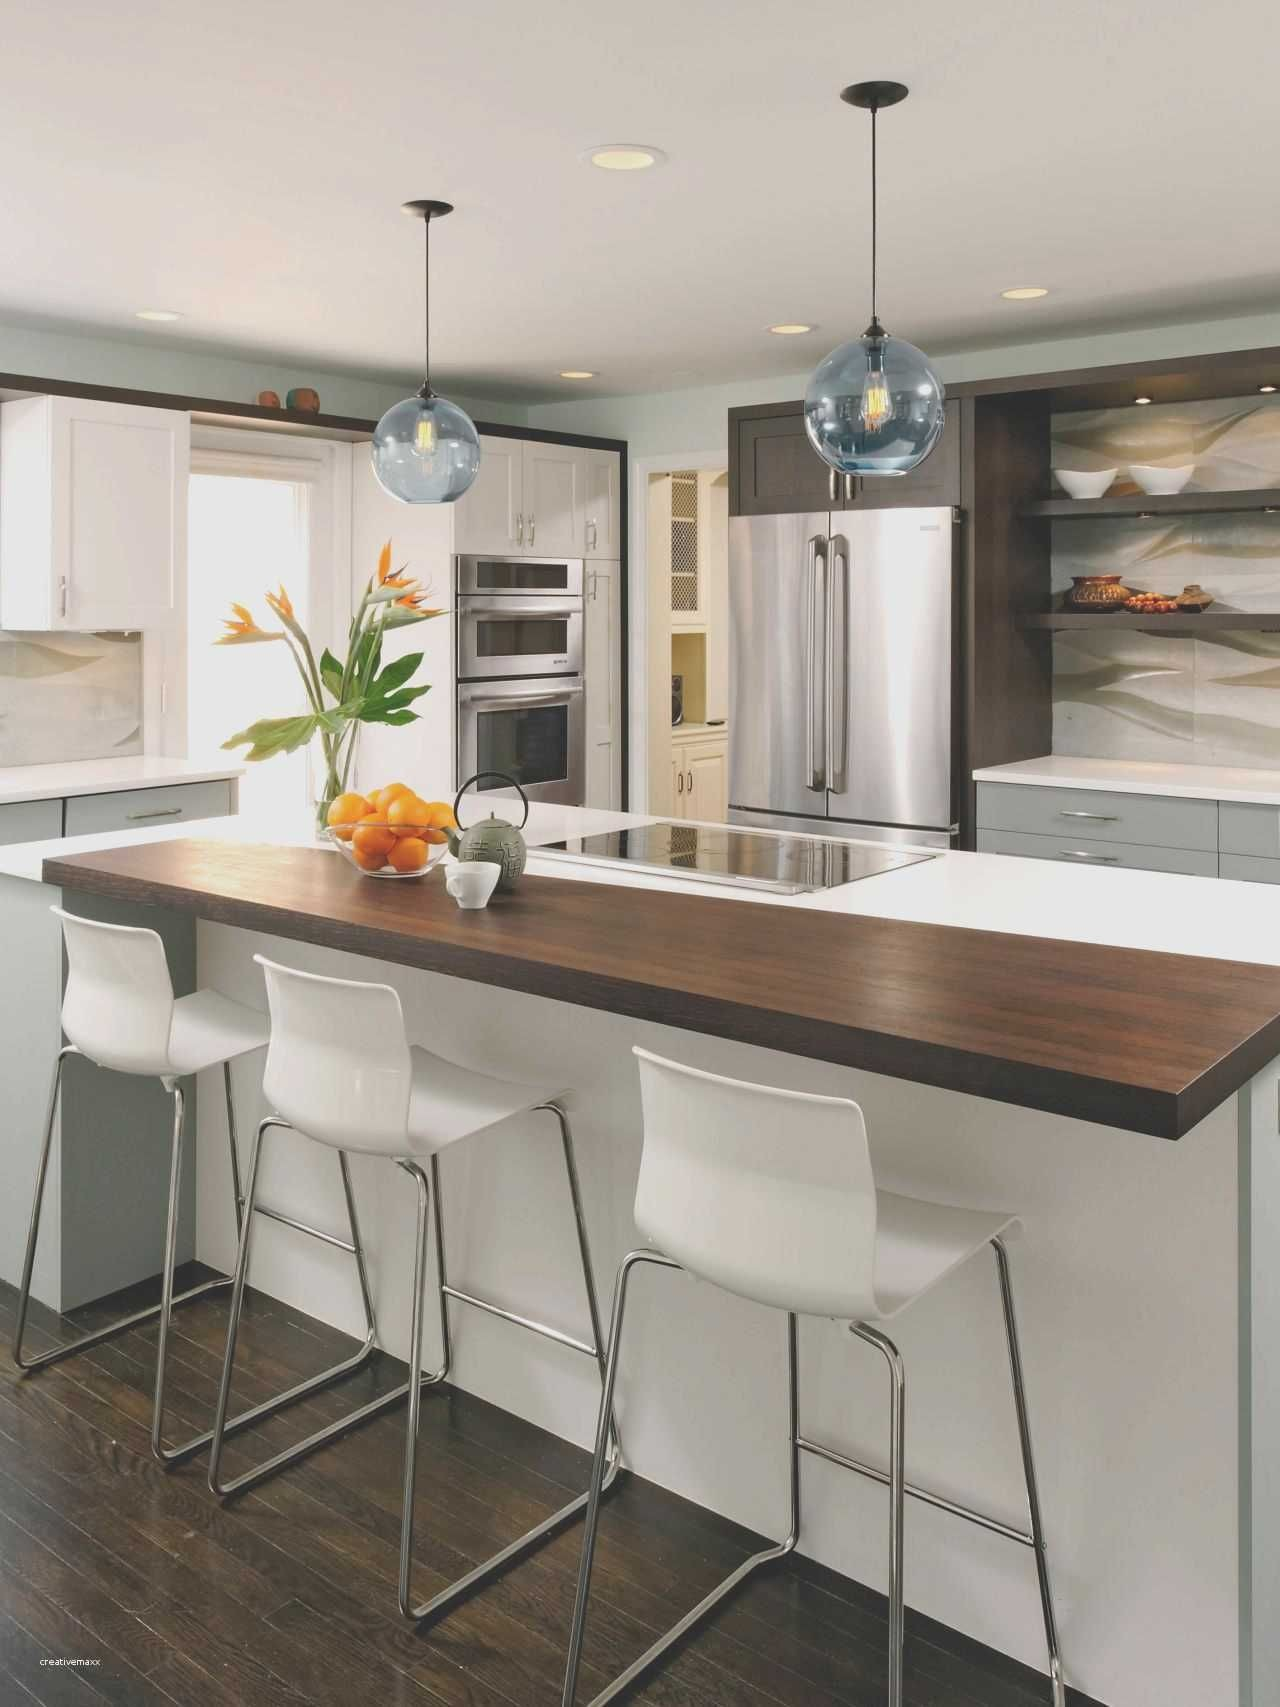 Desain Dapur Go Green Paling Indah Untuk New Kitchen island with Bench Seating Small Spaces